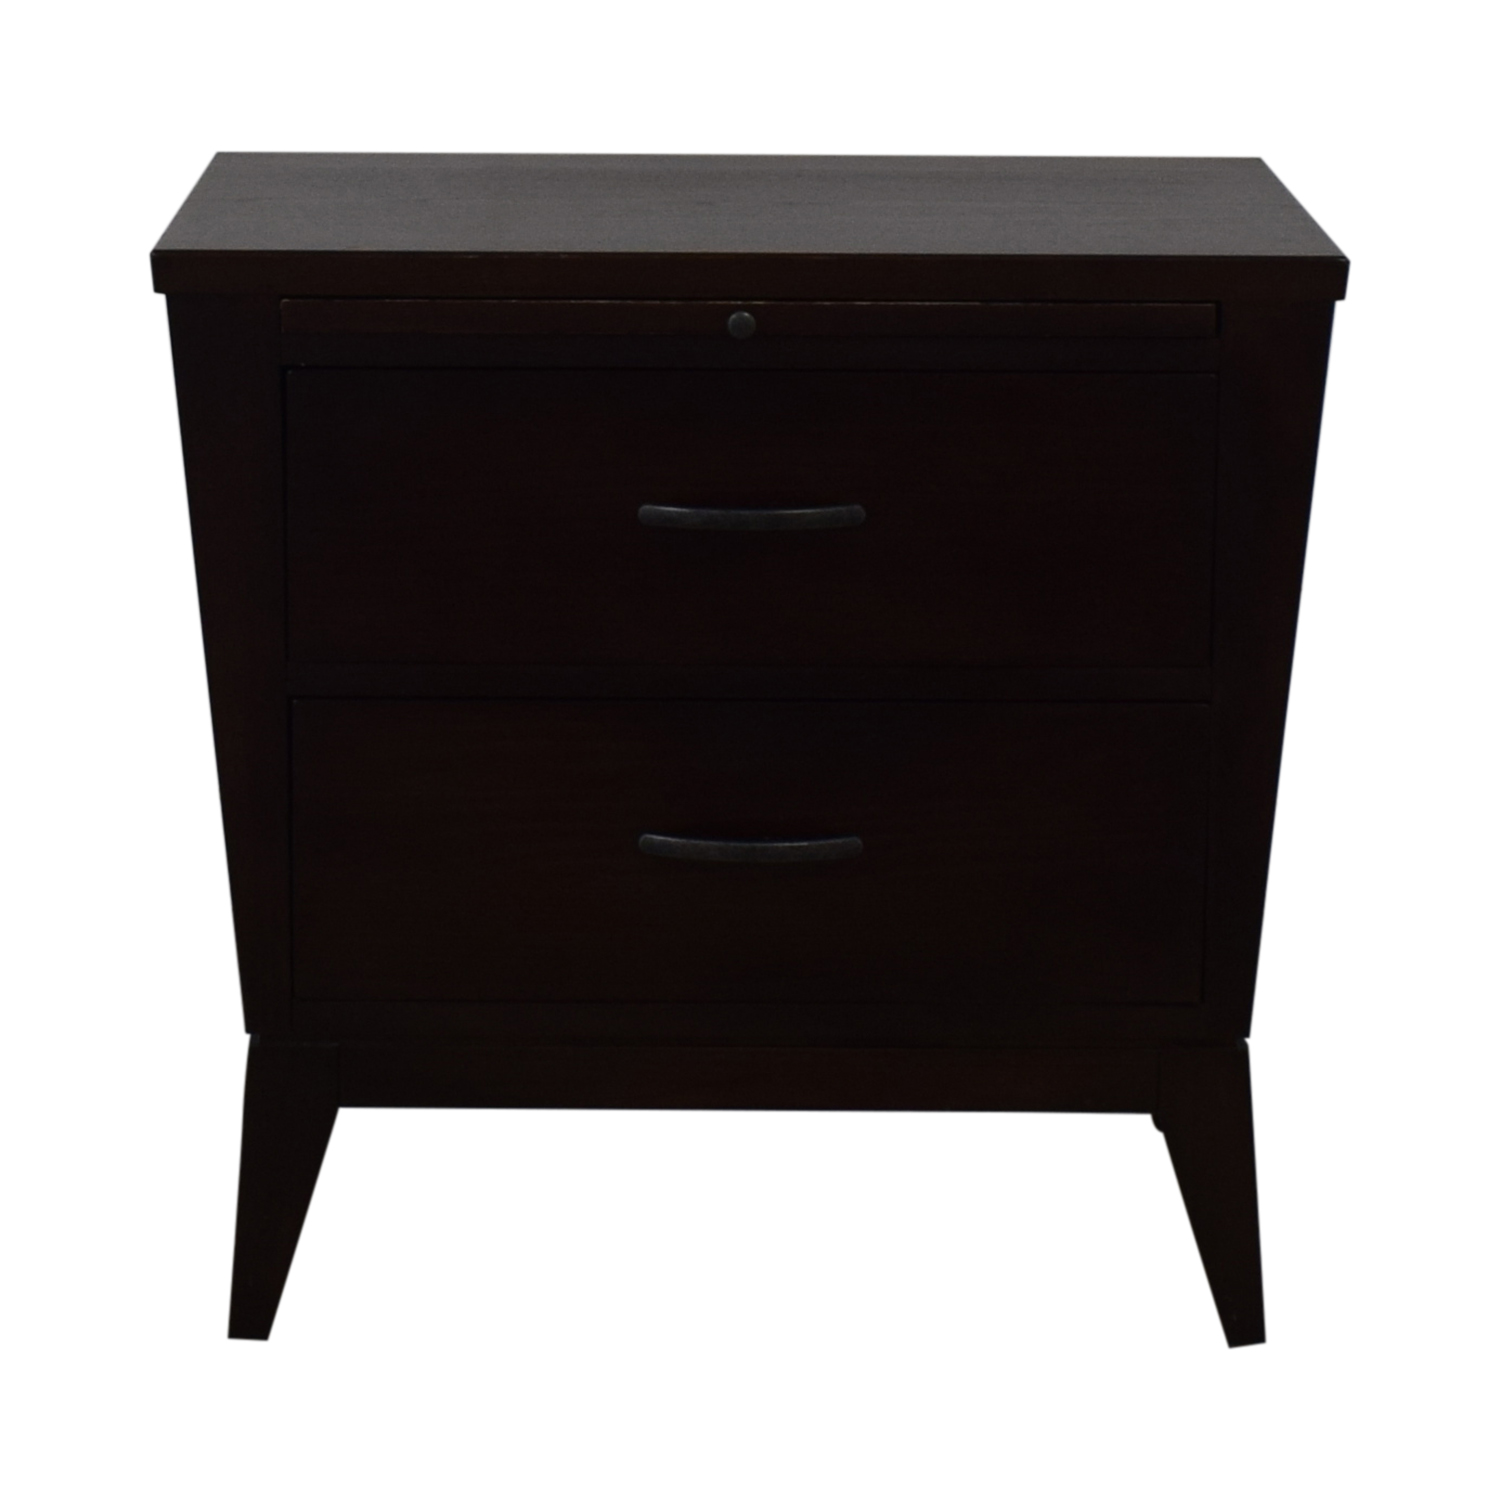 Ethan Allen Ethan Allen Nightstand with Drawers End Tables